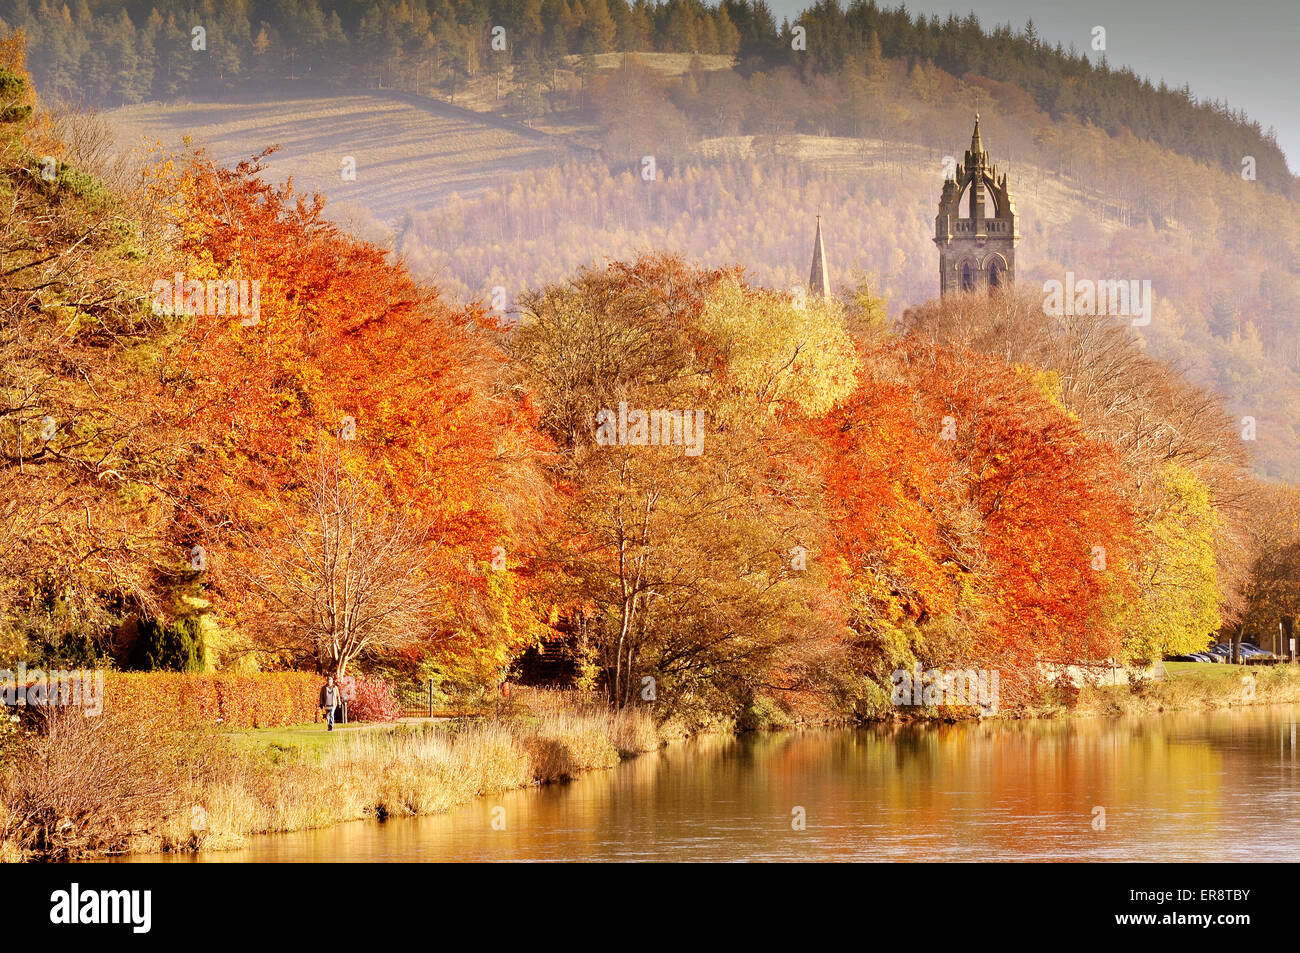 The River Tweed at Peebles, Scottish Borders - Stock Image